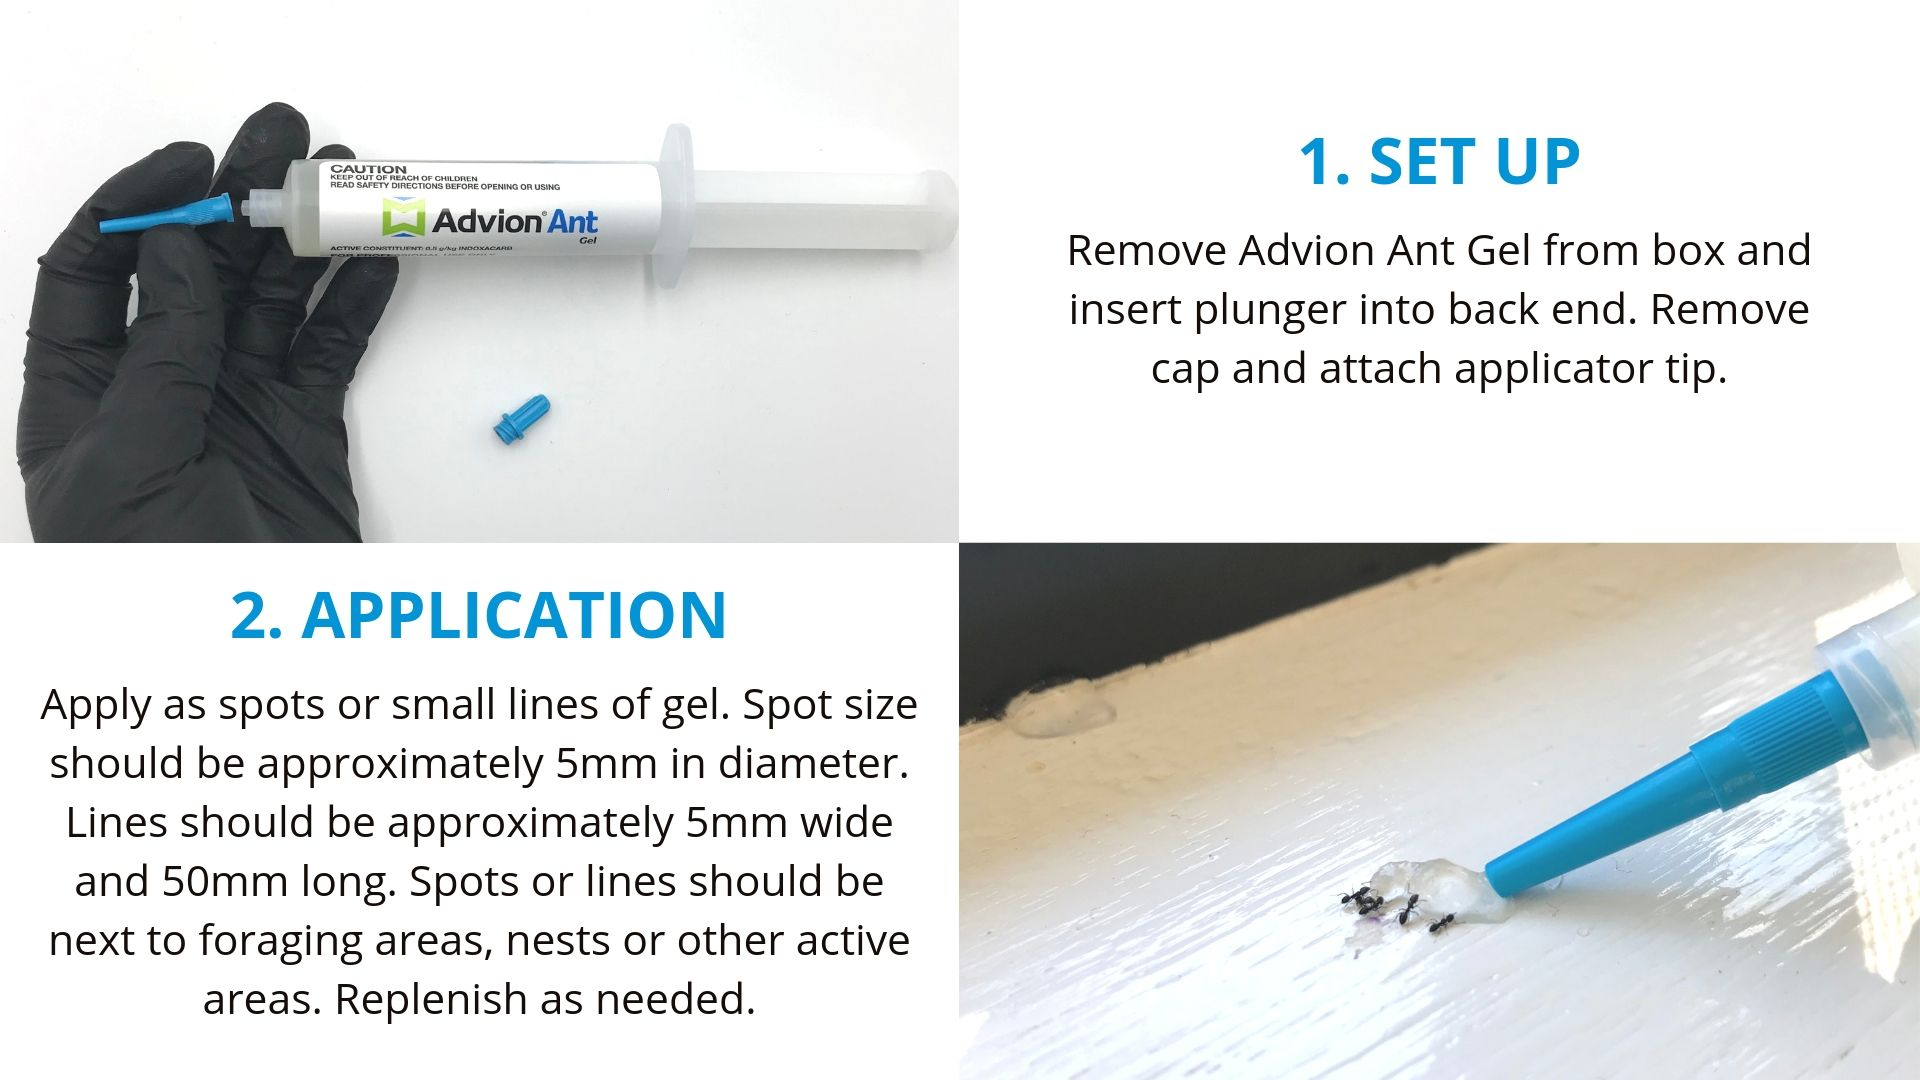 How to use Advion Ant Gel